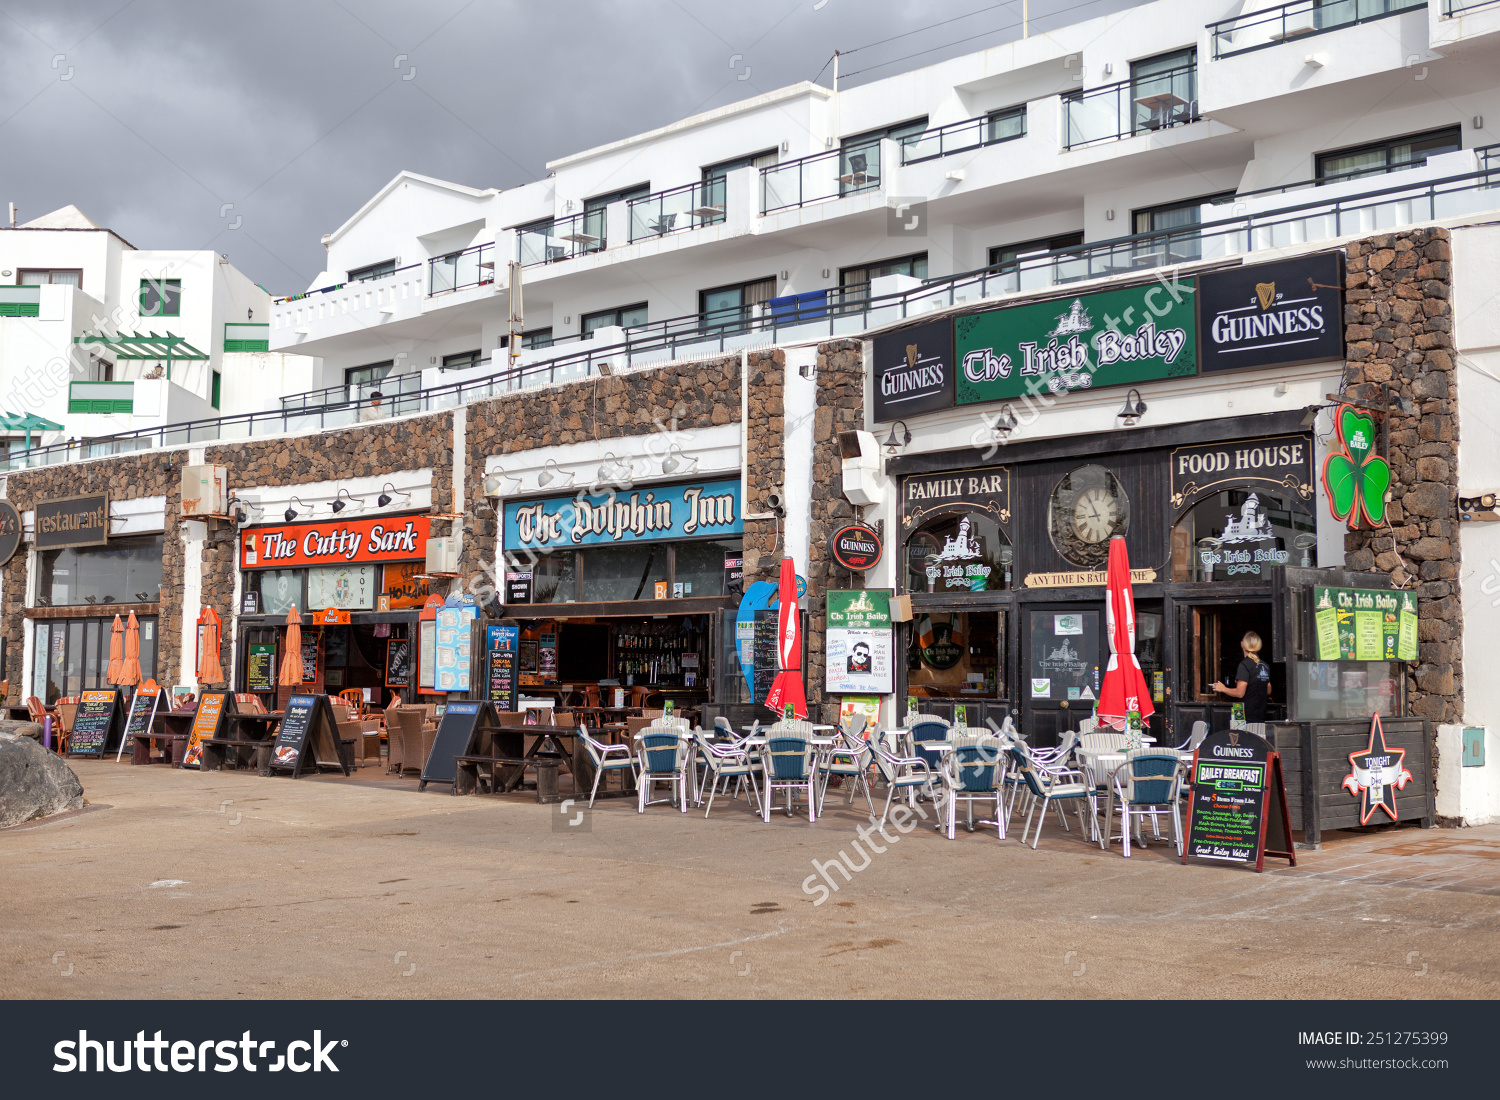 Costa Teguise Lanzarote Spain July 5 Stock Photo 251275399.